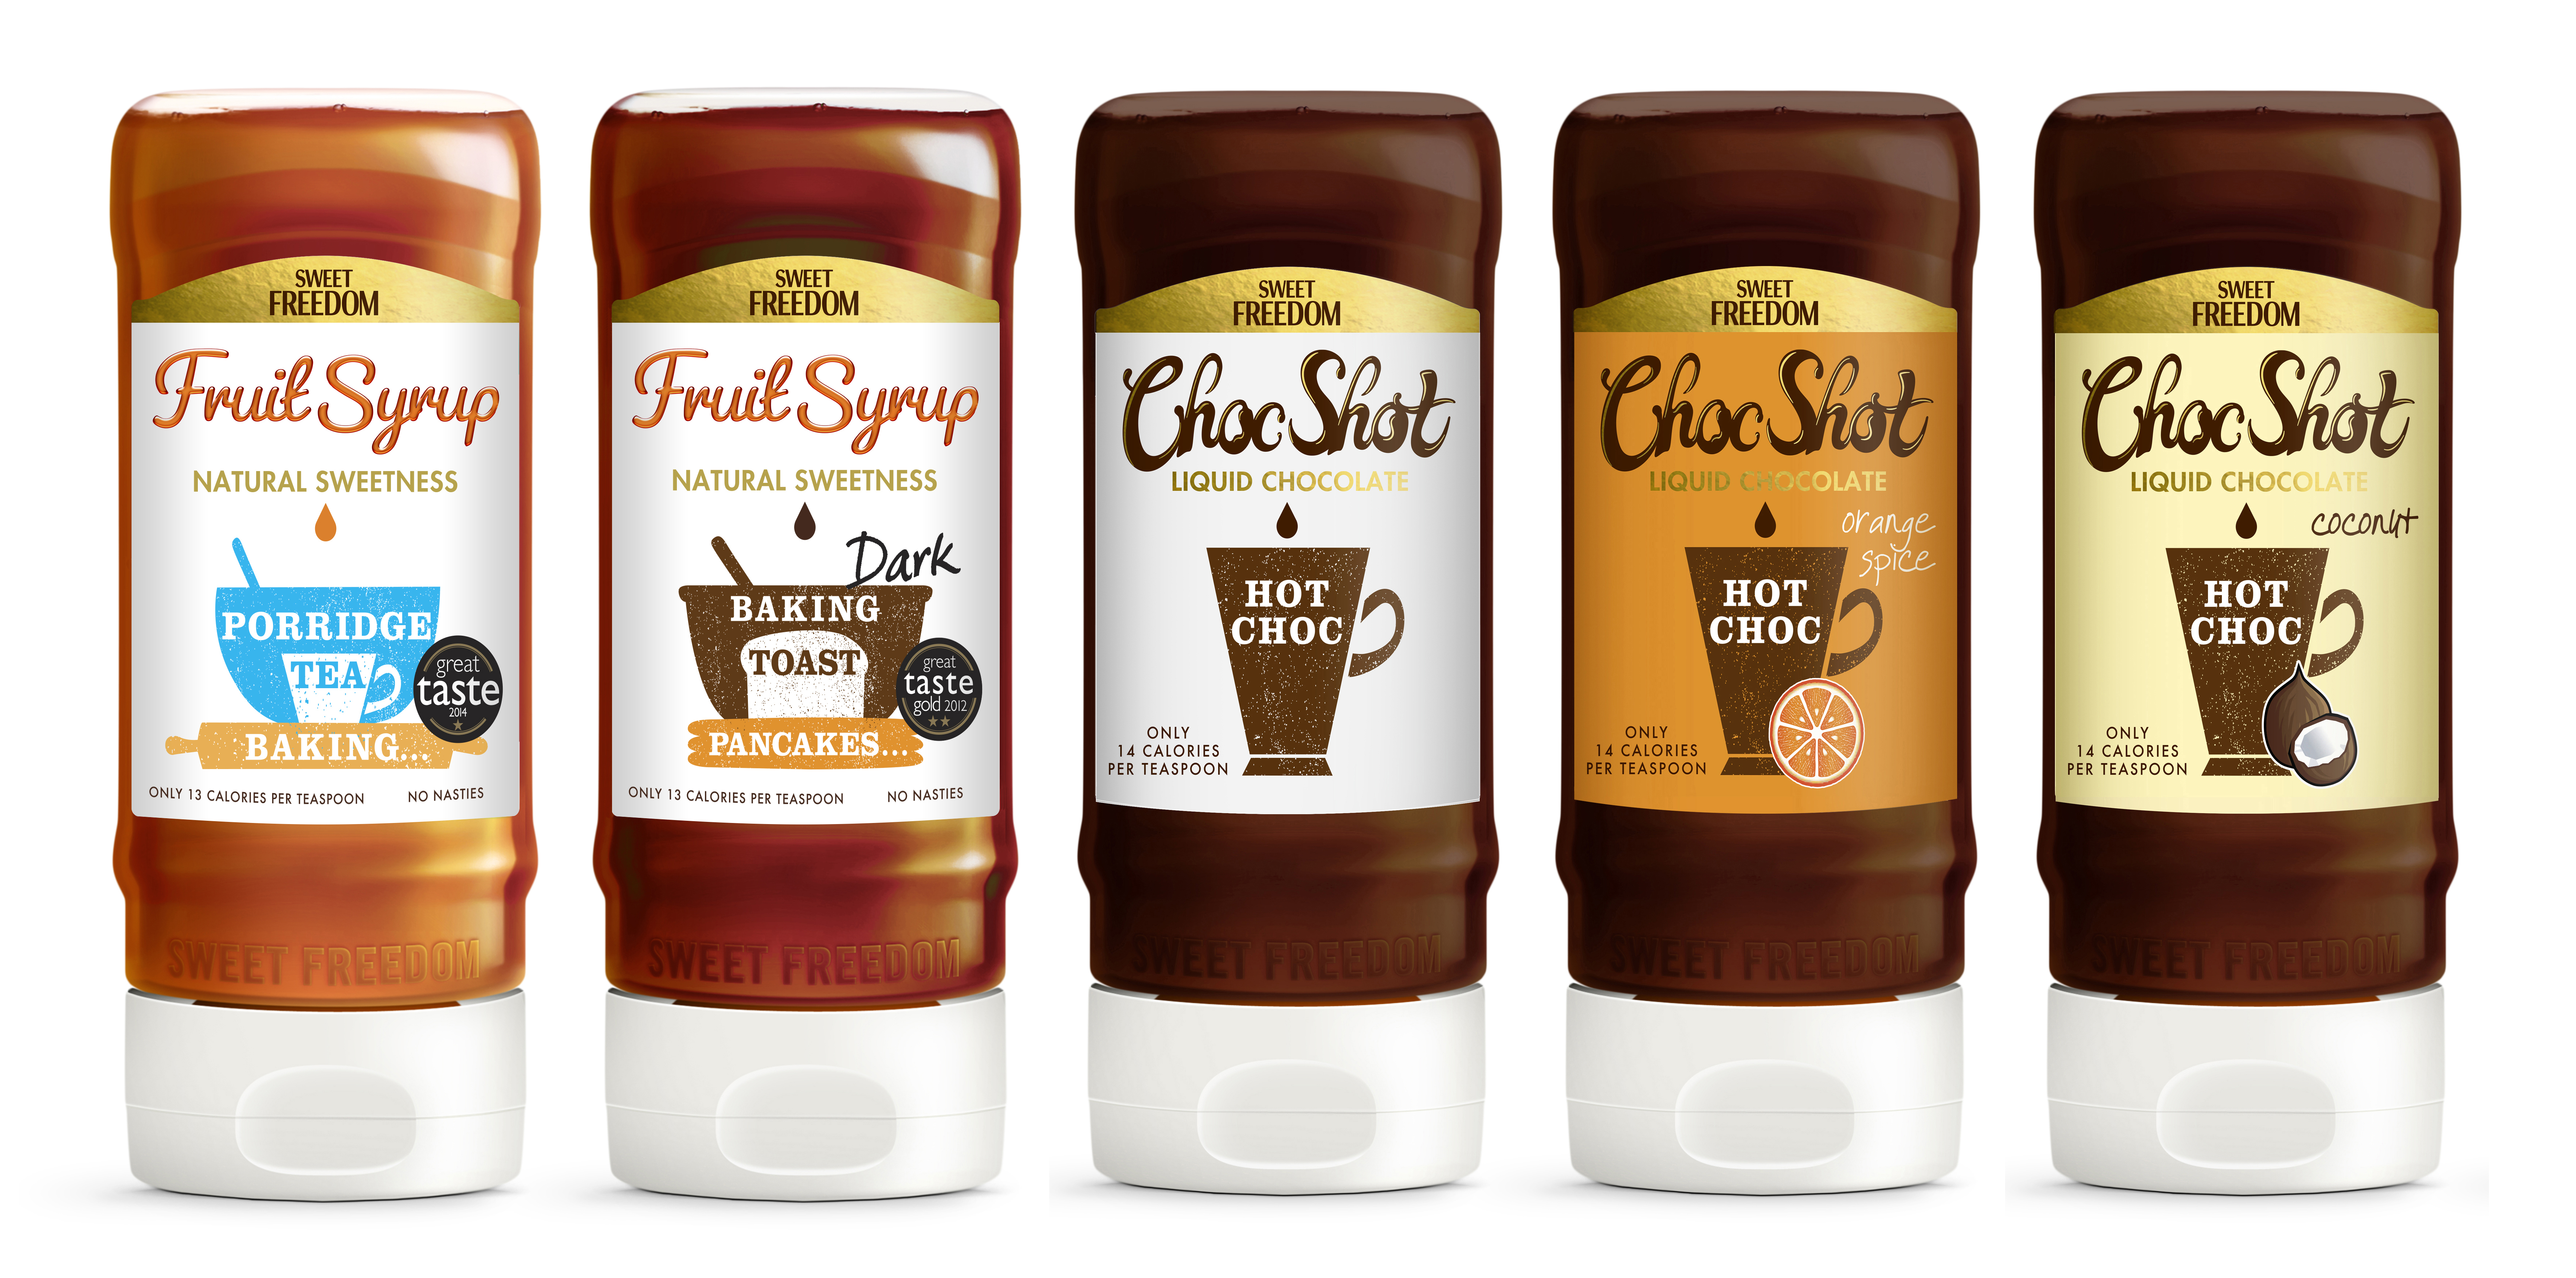 How Tina Michelucci got her healthy food product Choc Shot into every UK supermarket in 12 months